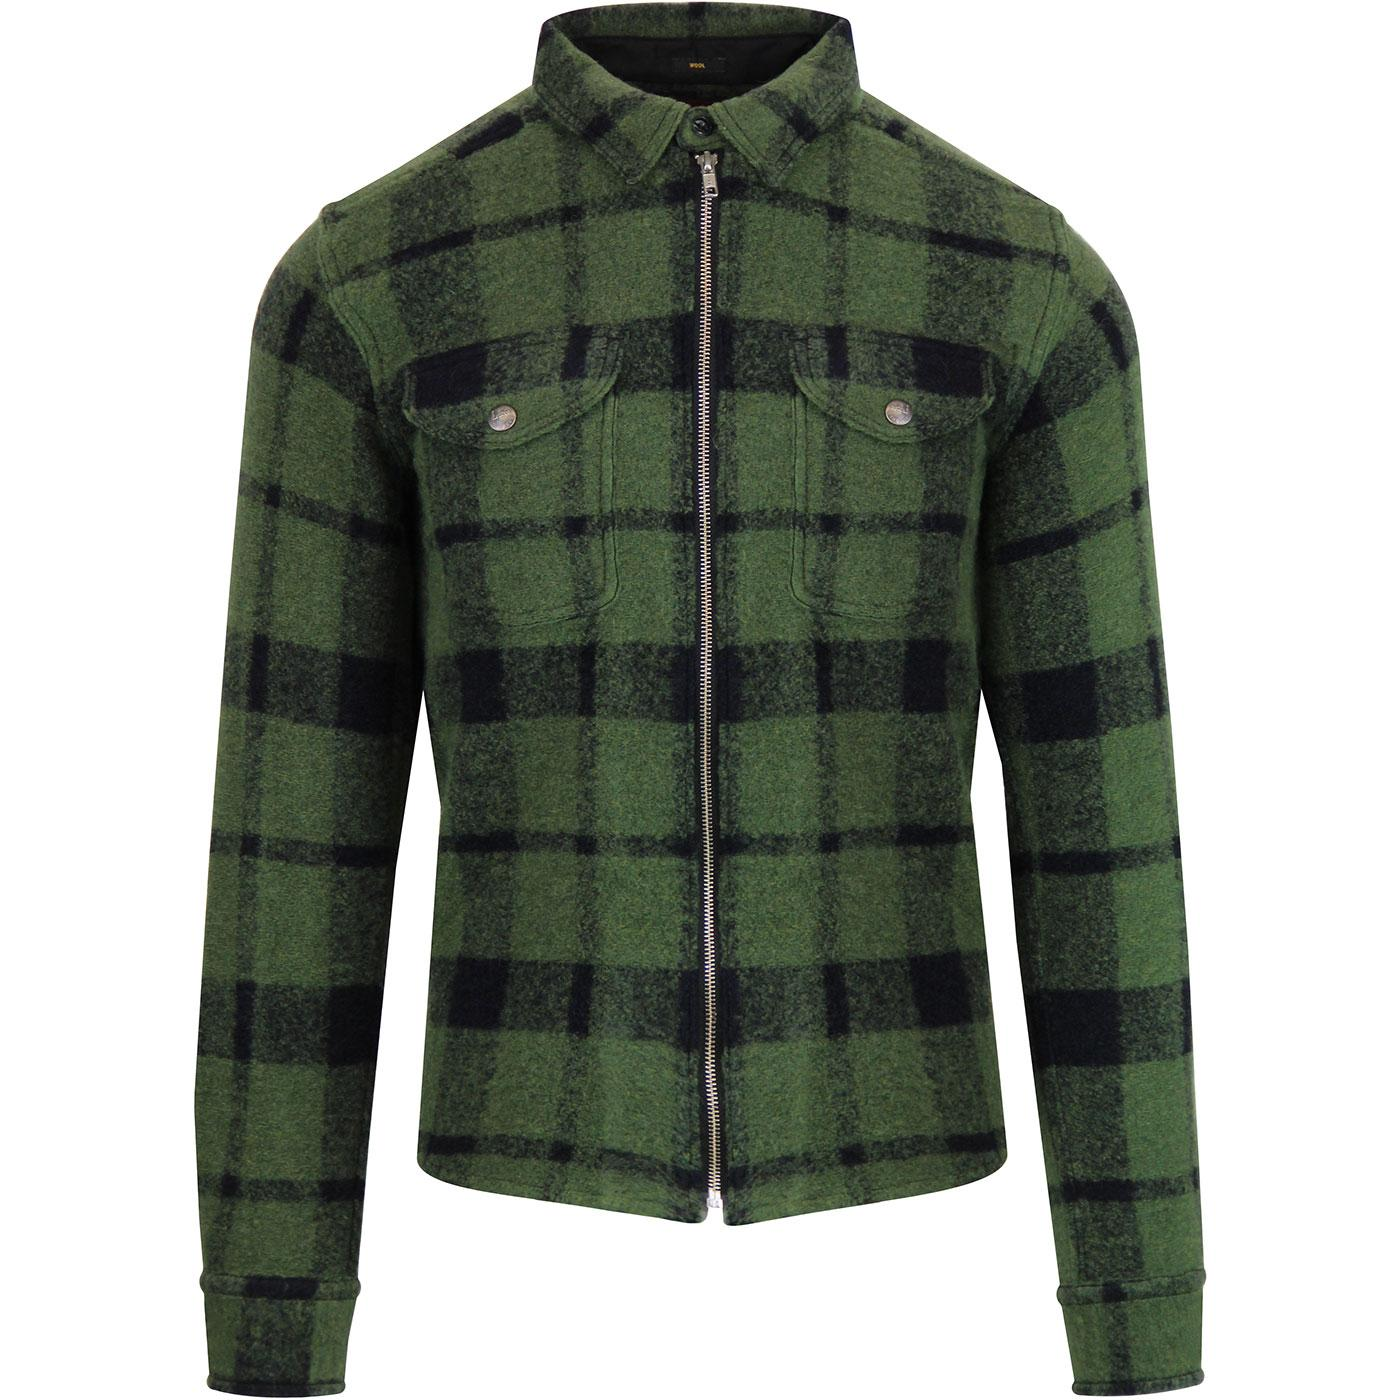 LEE JEANS Men's Retro 50s Wool Overshirt Jacket